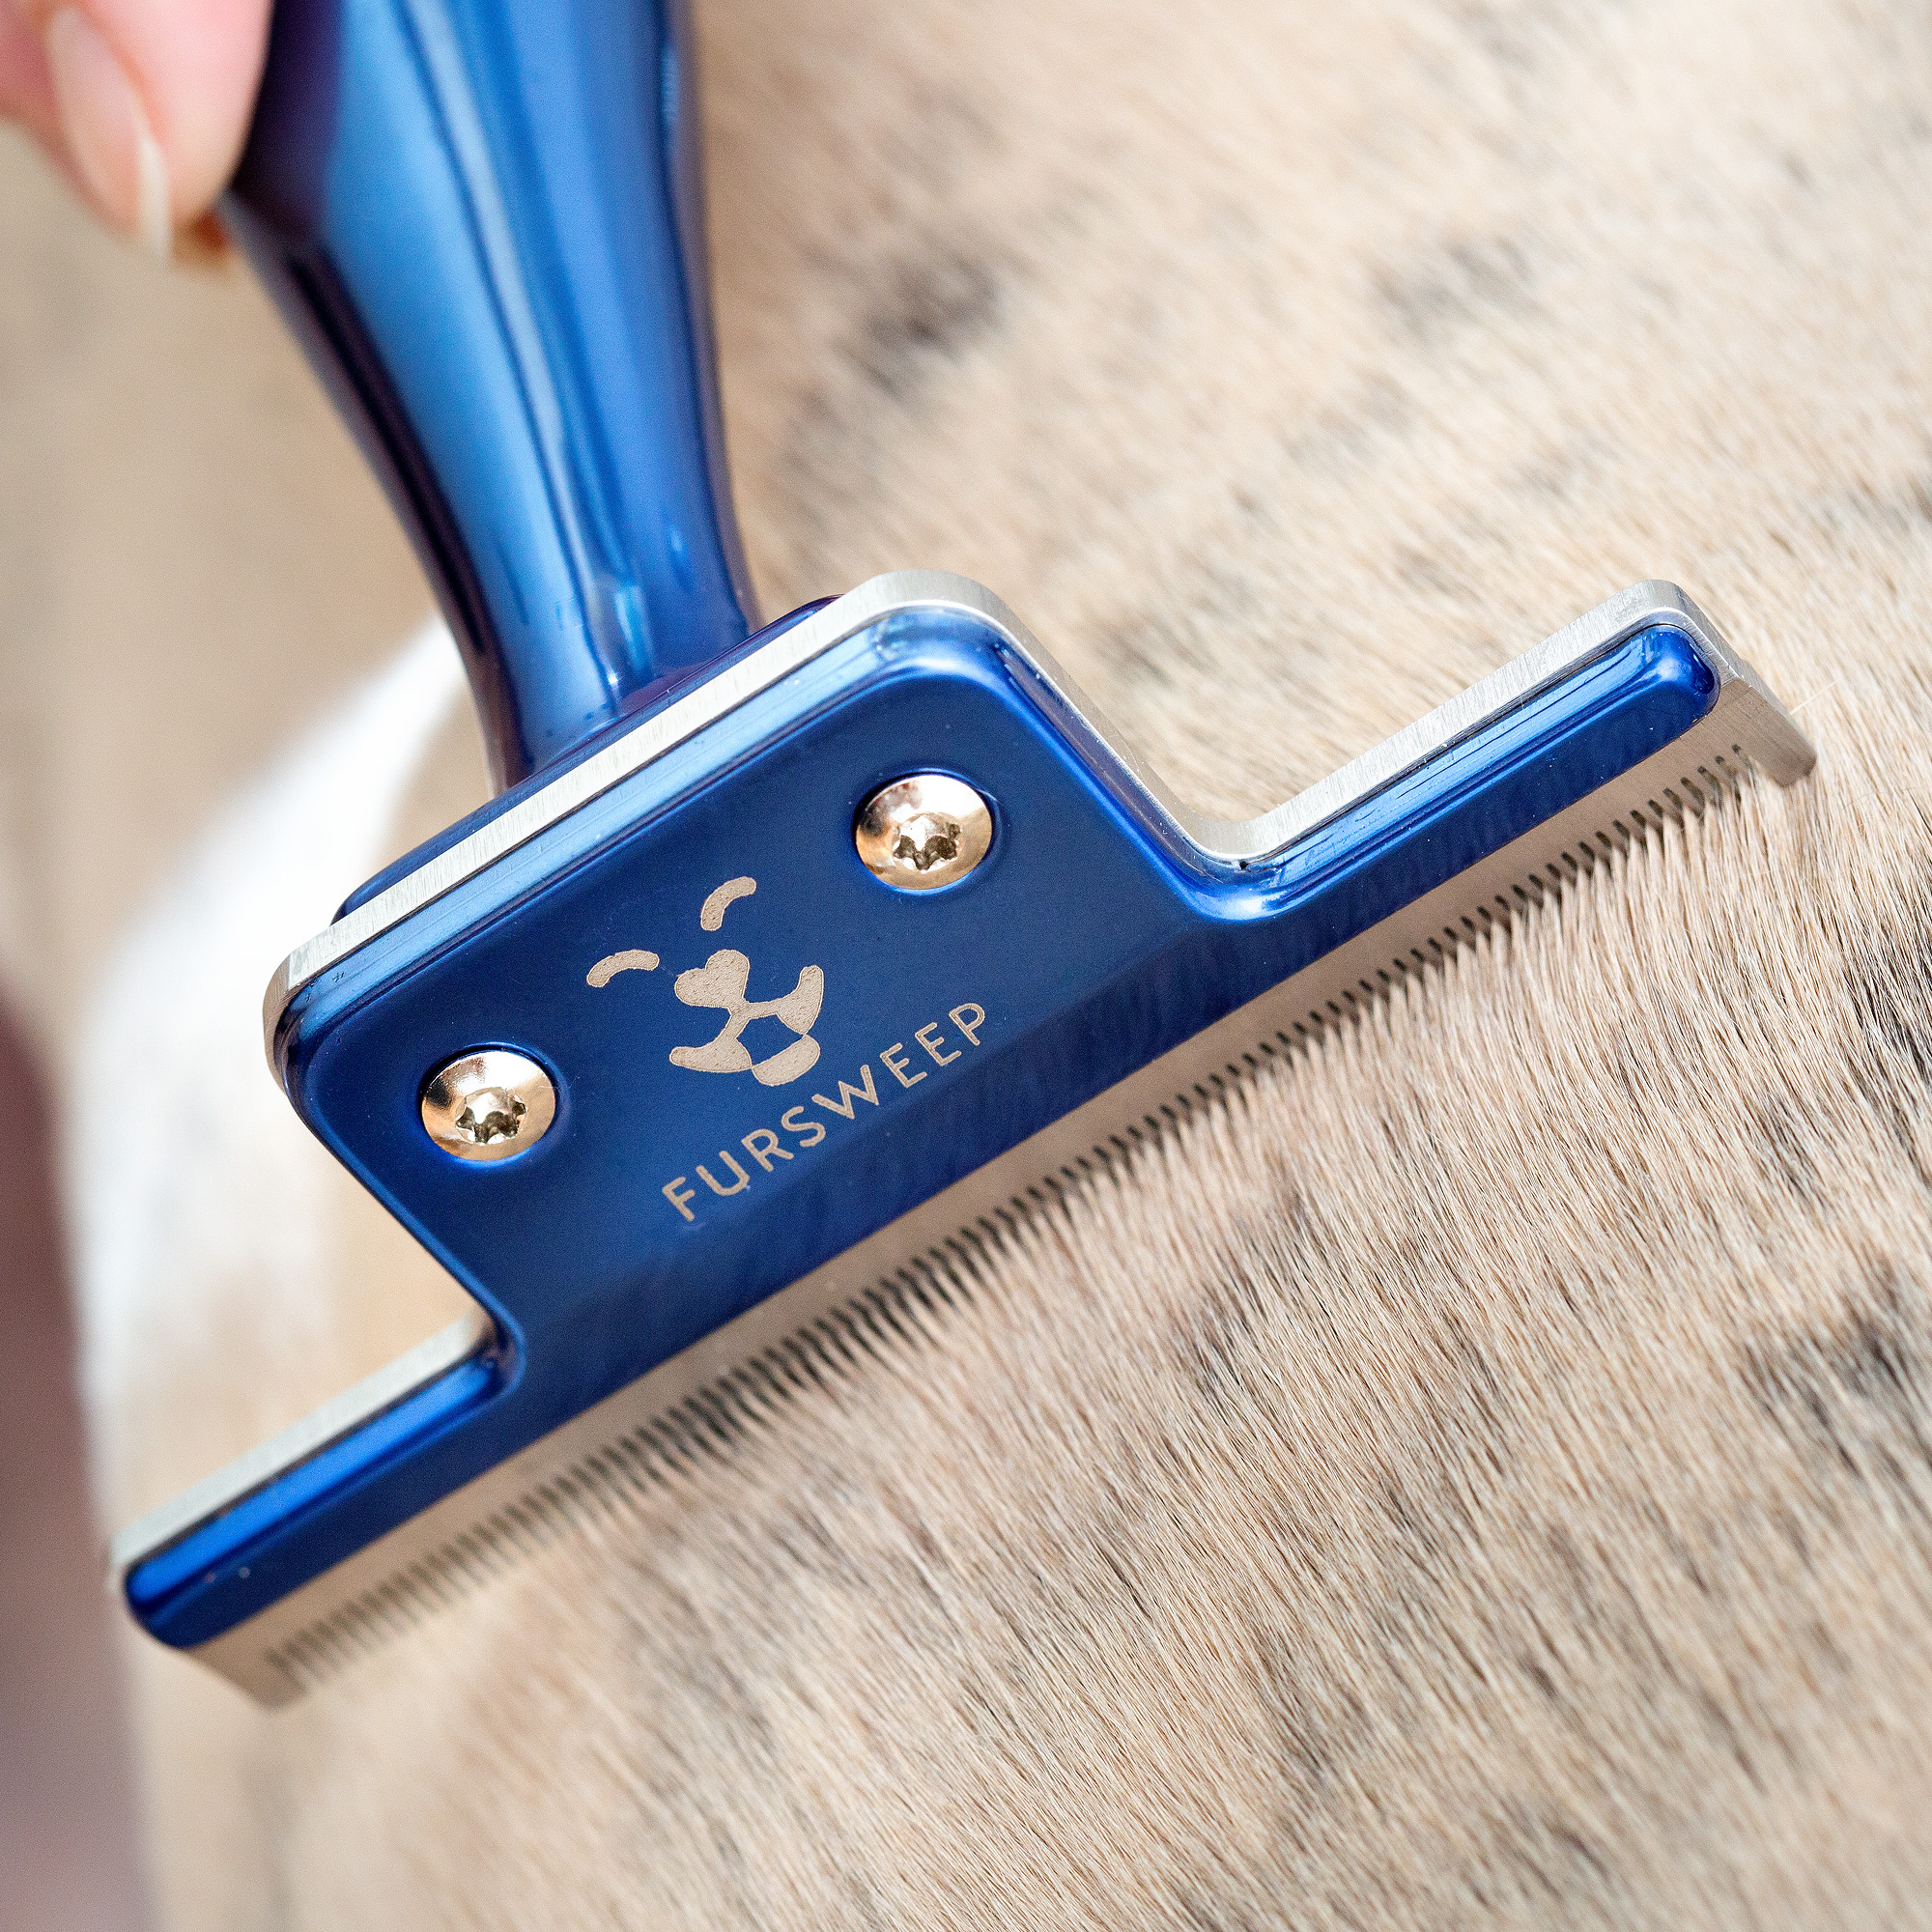 The professional grooming tool is designed for all animals and home pet care.